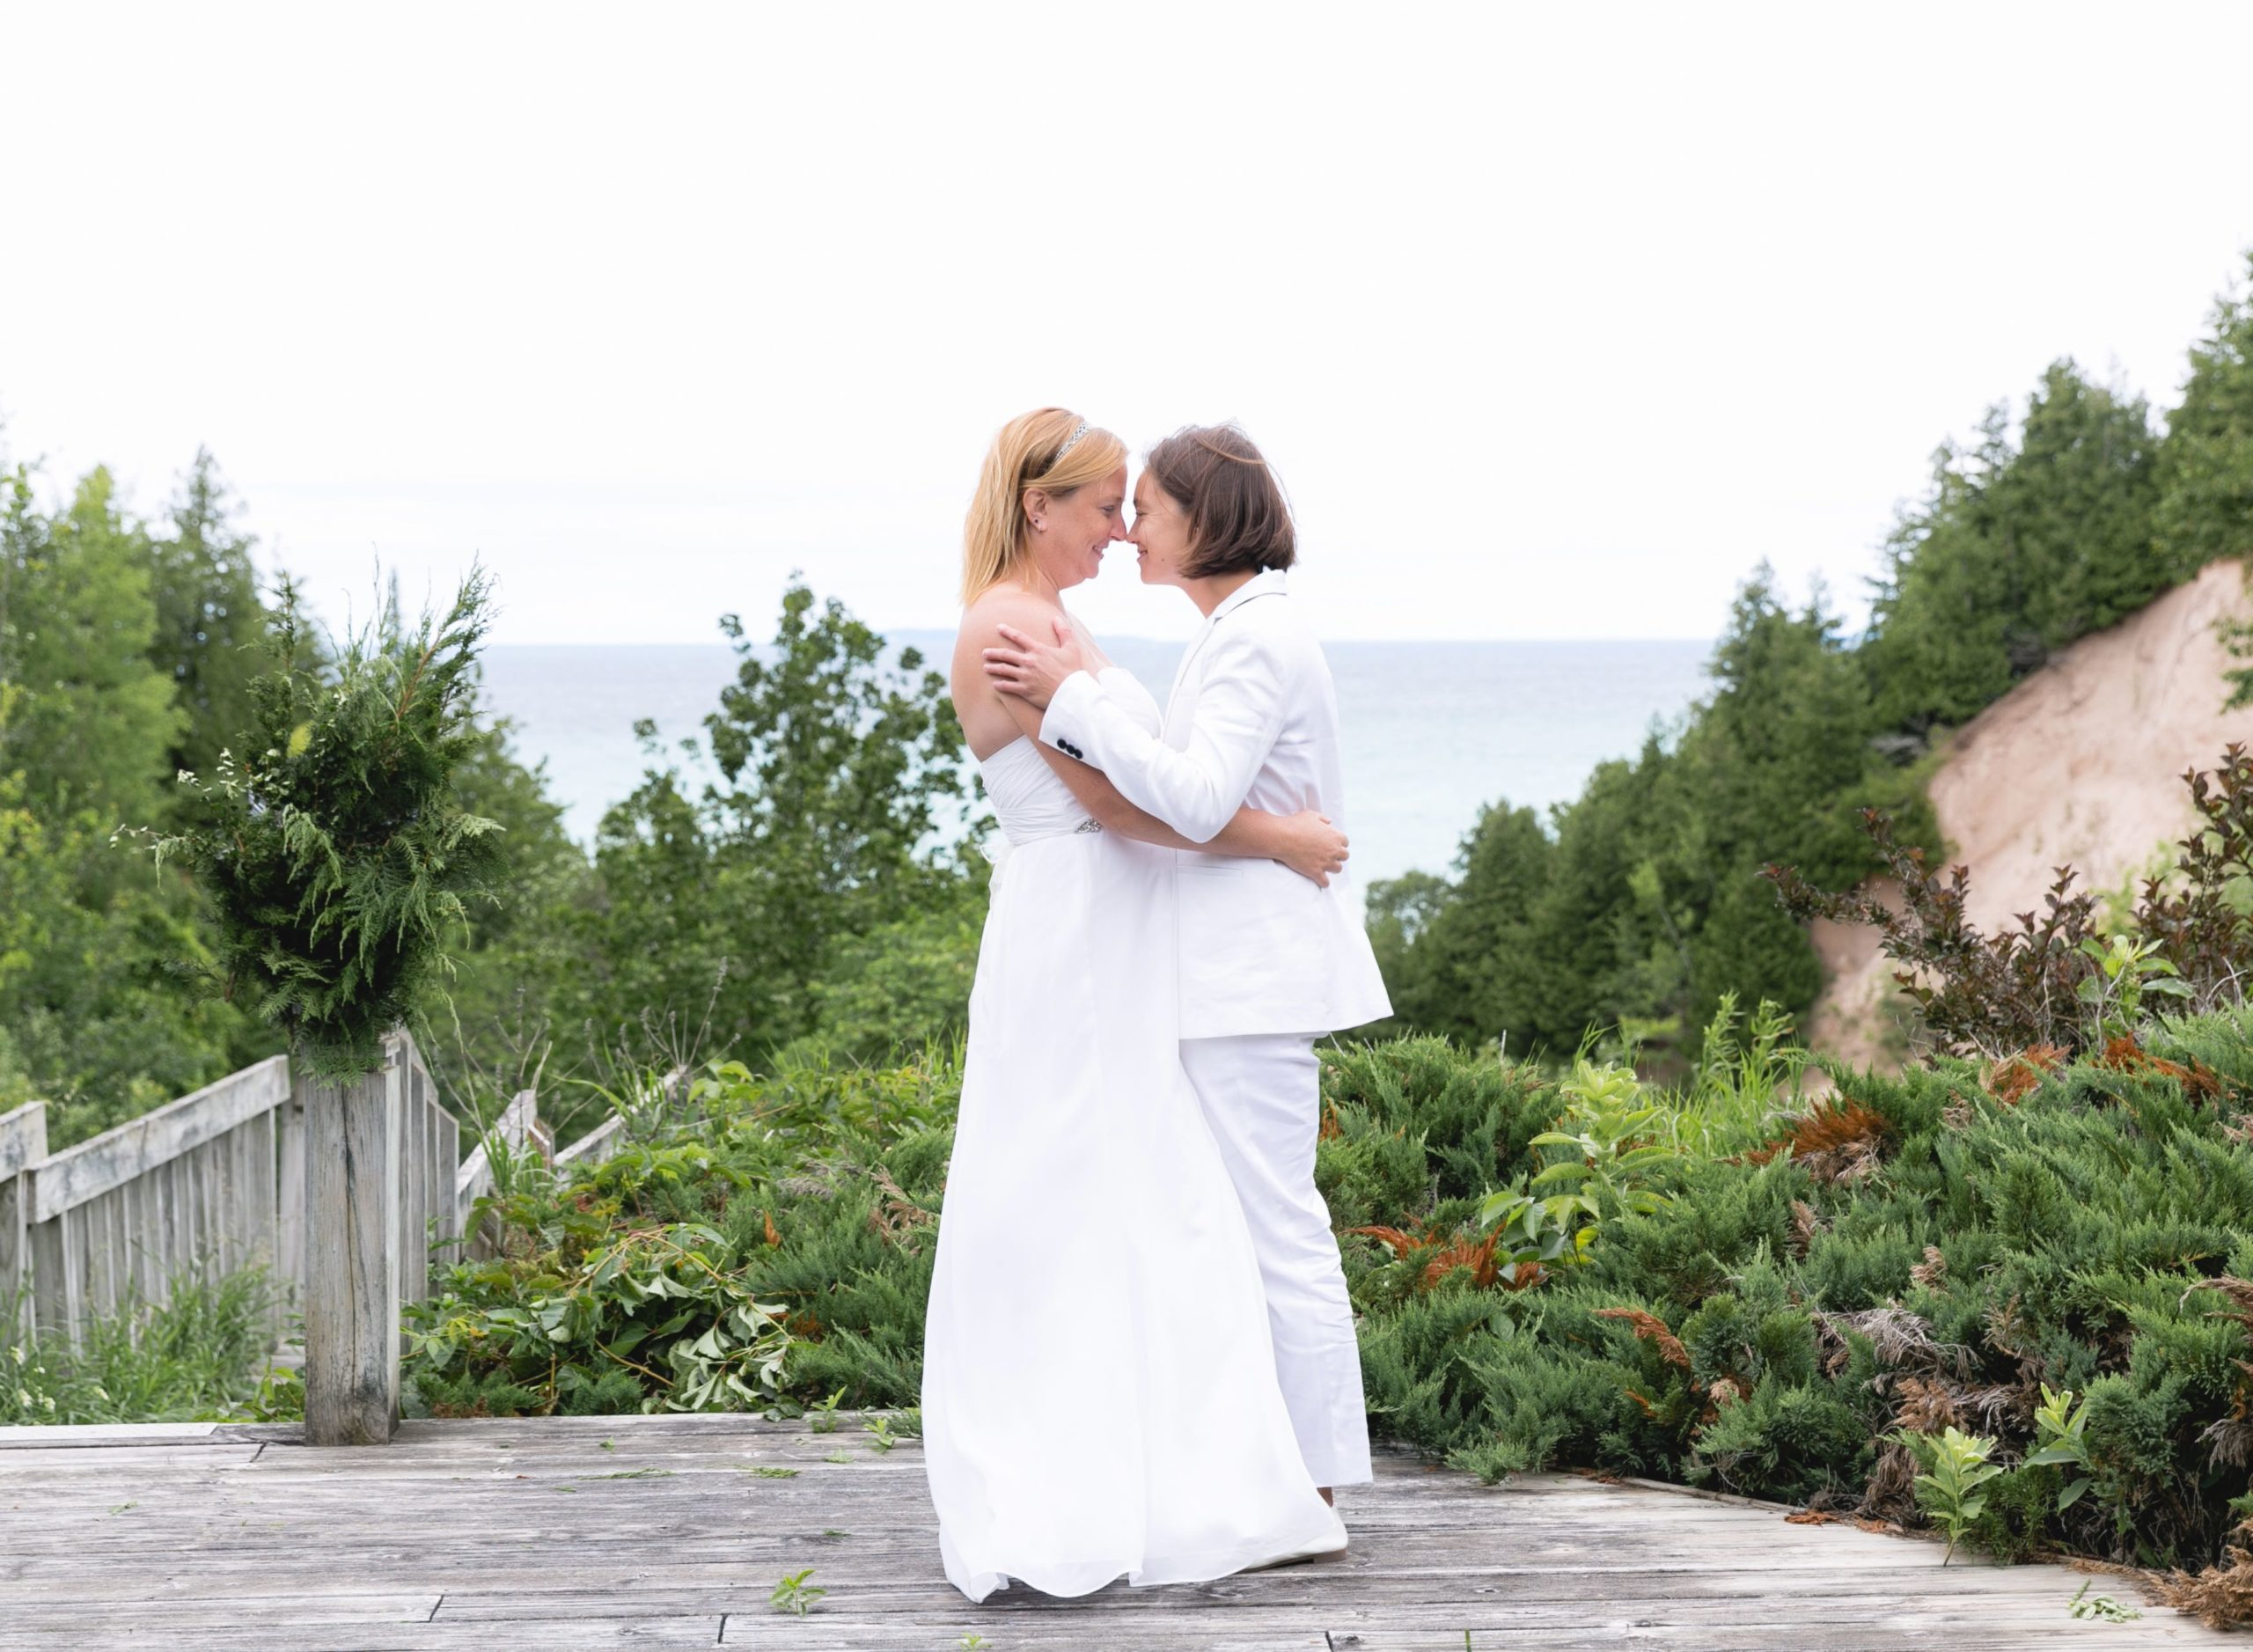 Rachel and Sarah embracing in front of Lake Michigan